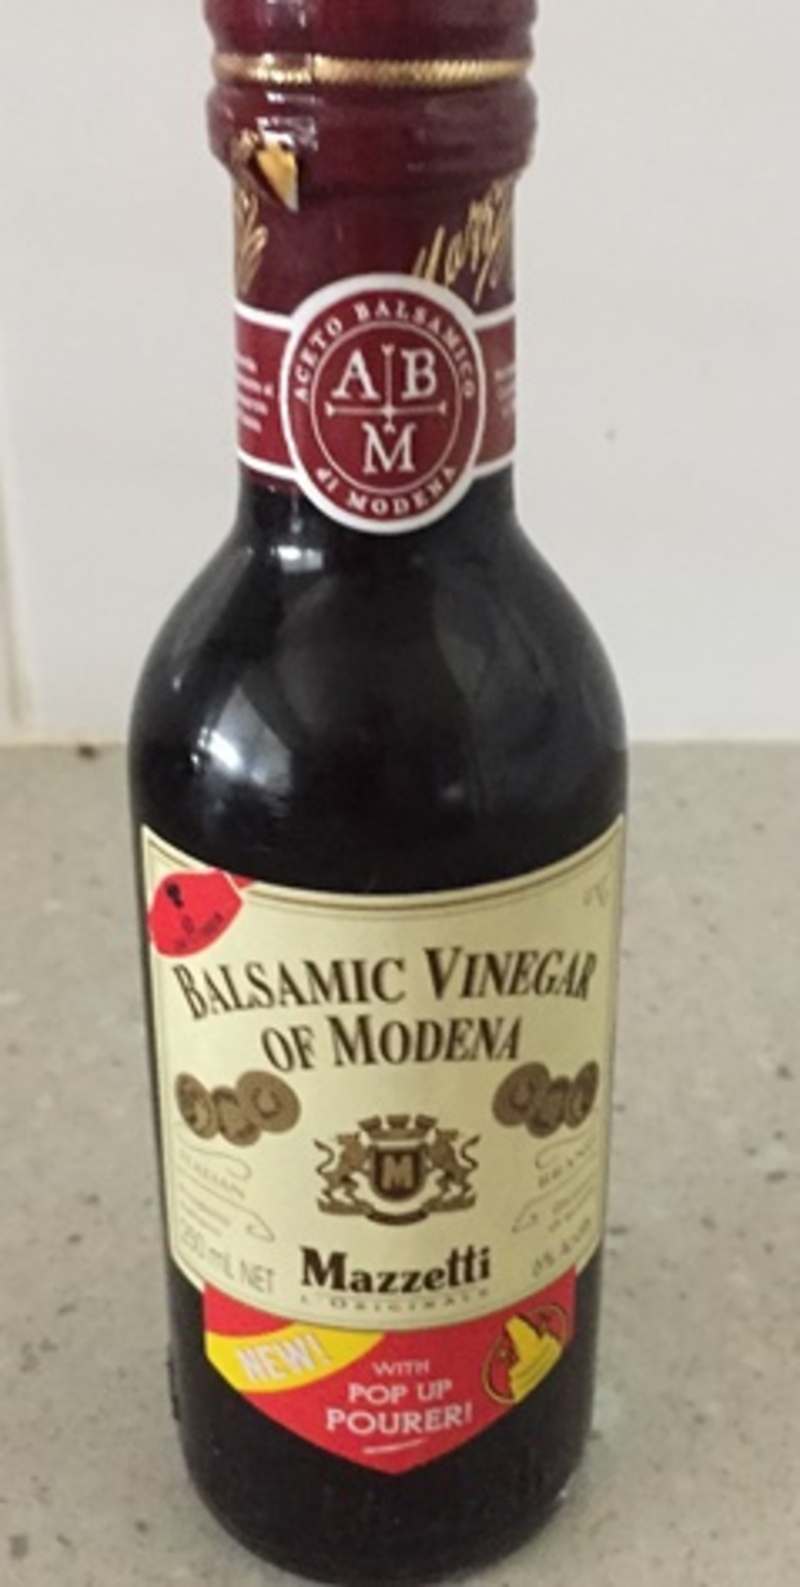 Balsamic Vinegar of Modena by Mazzetti